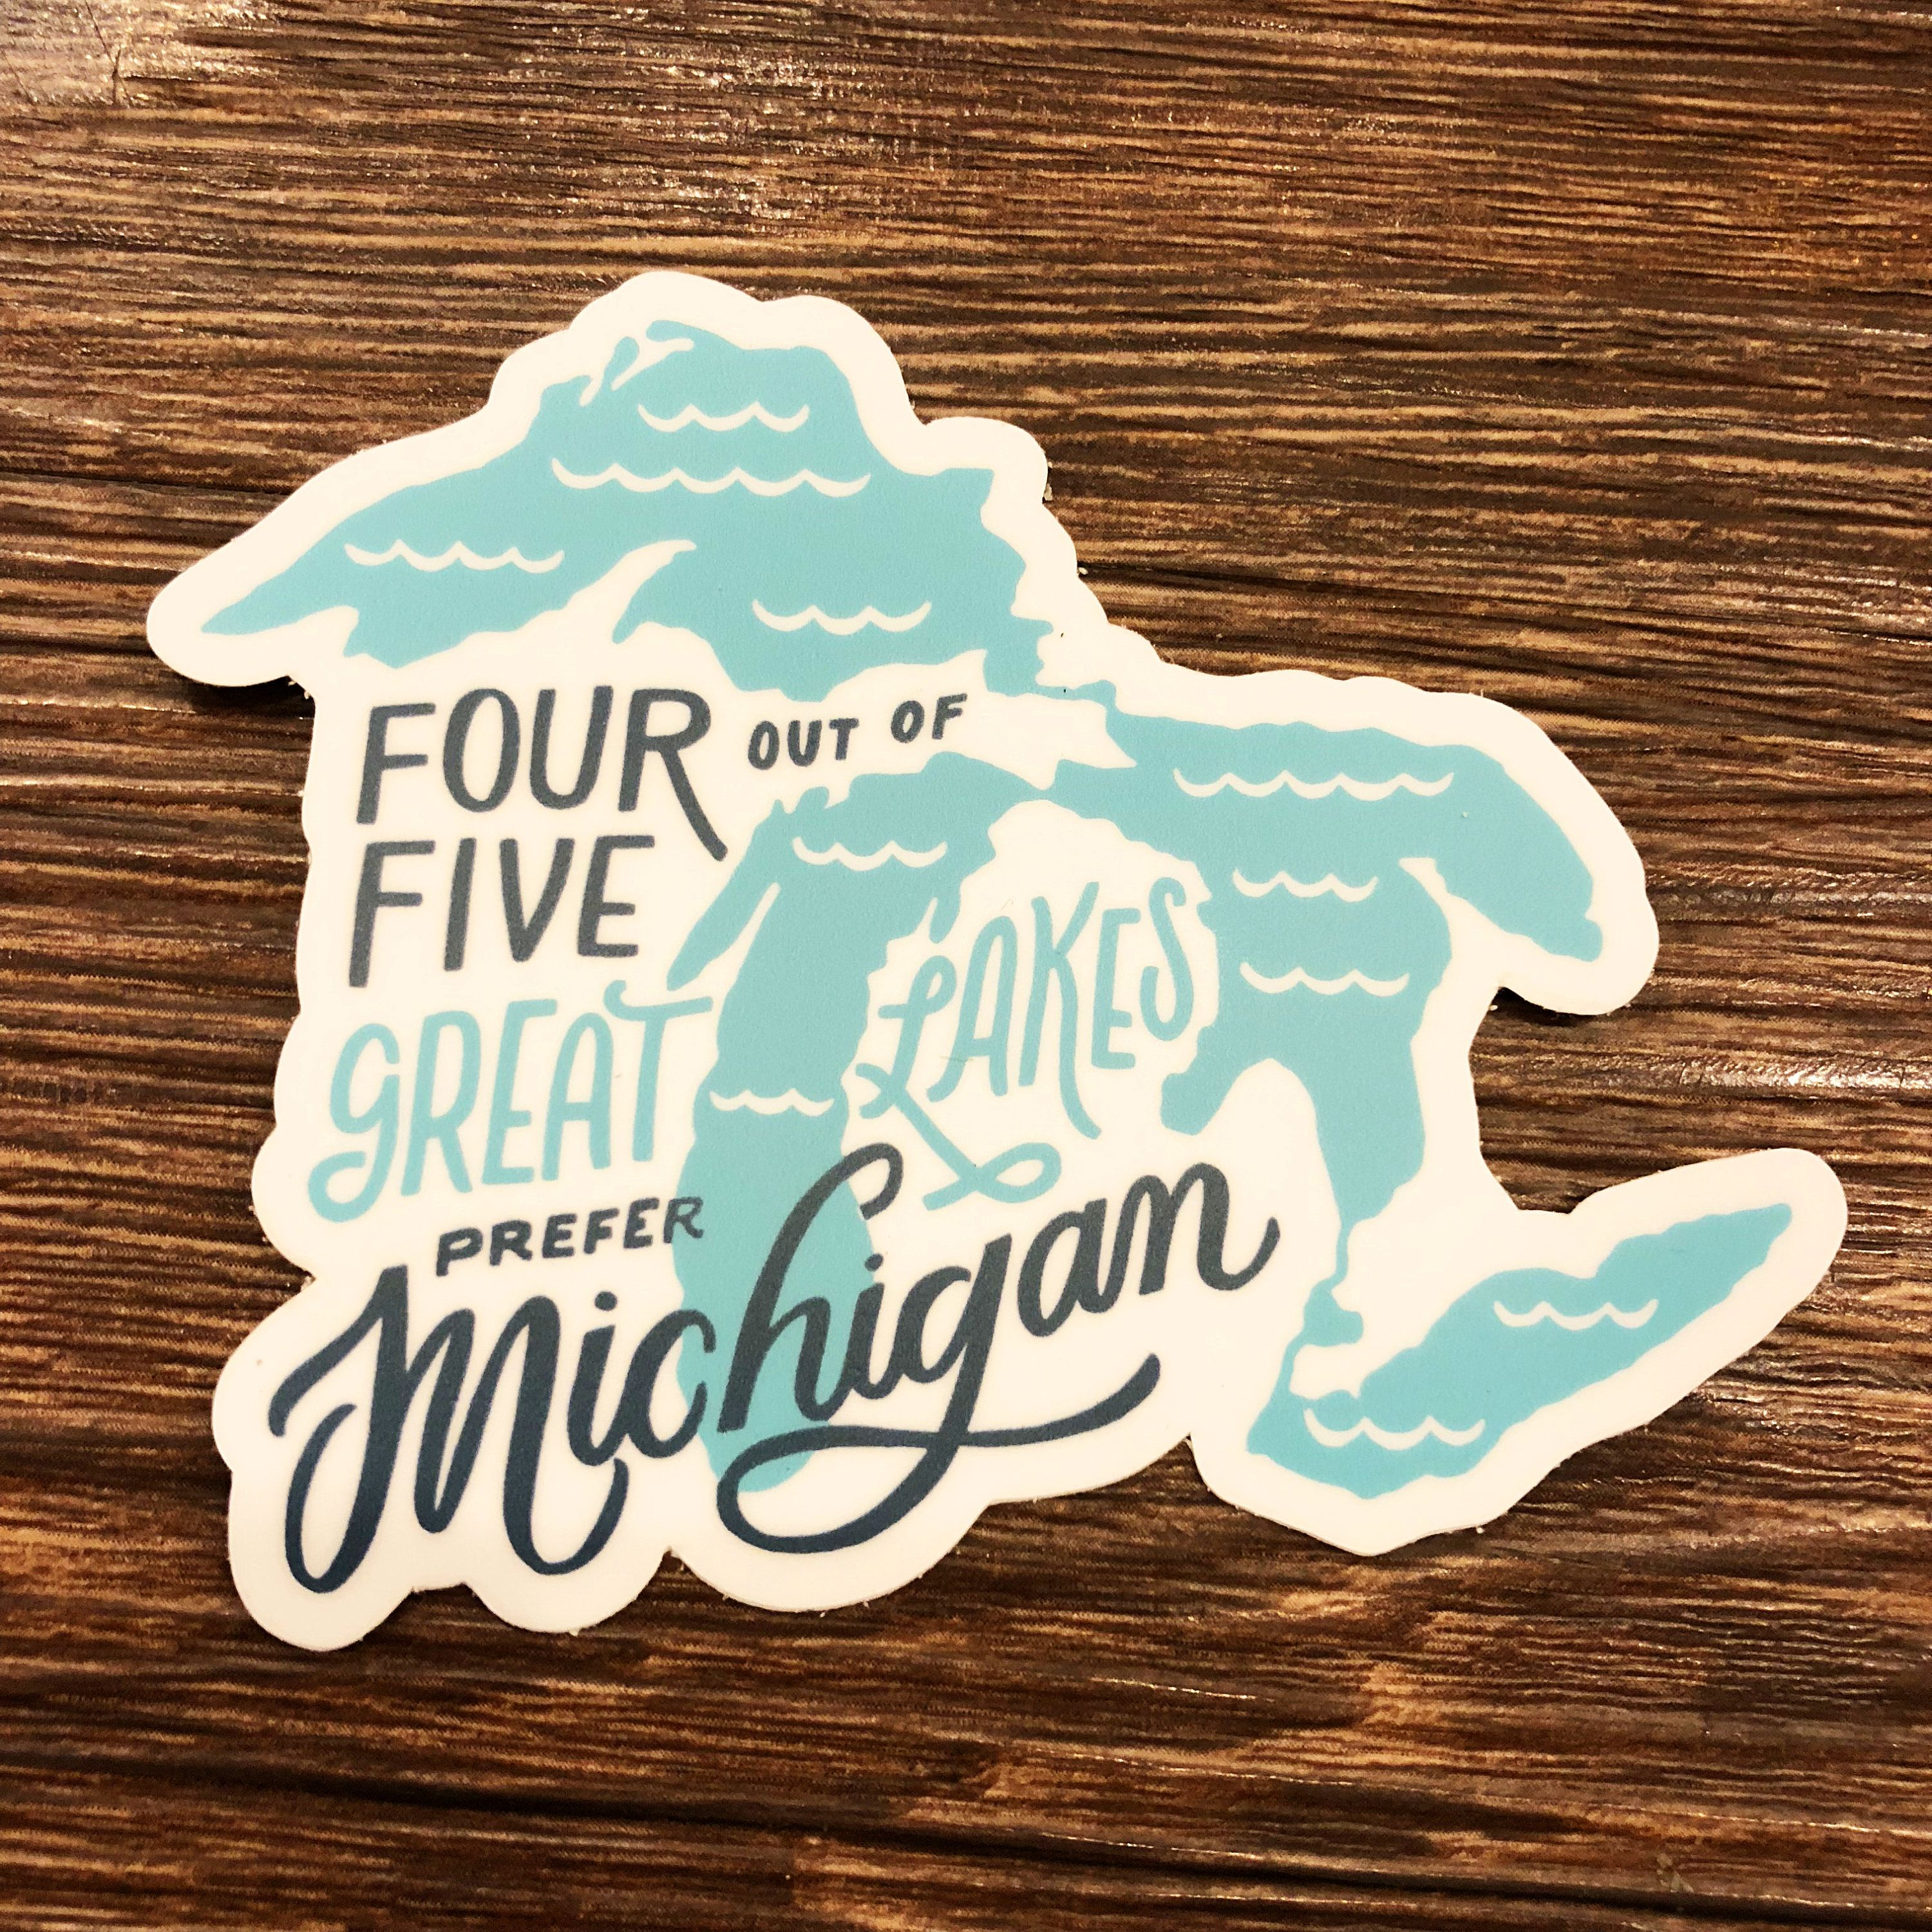 4 Out Of 5 Great Lakes Prefer Michigan Sticker In